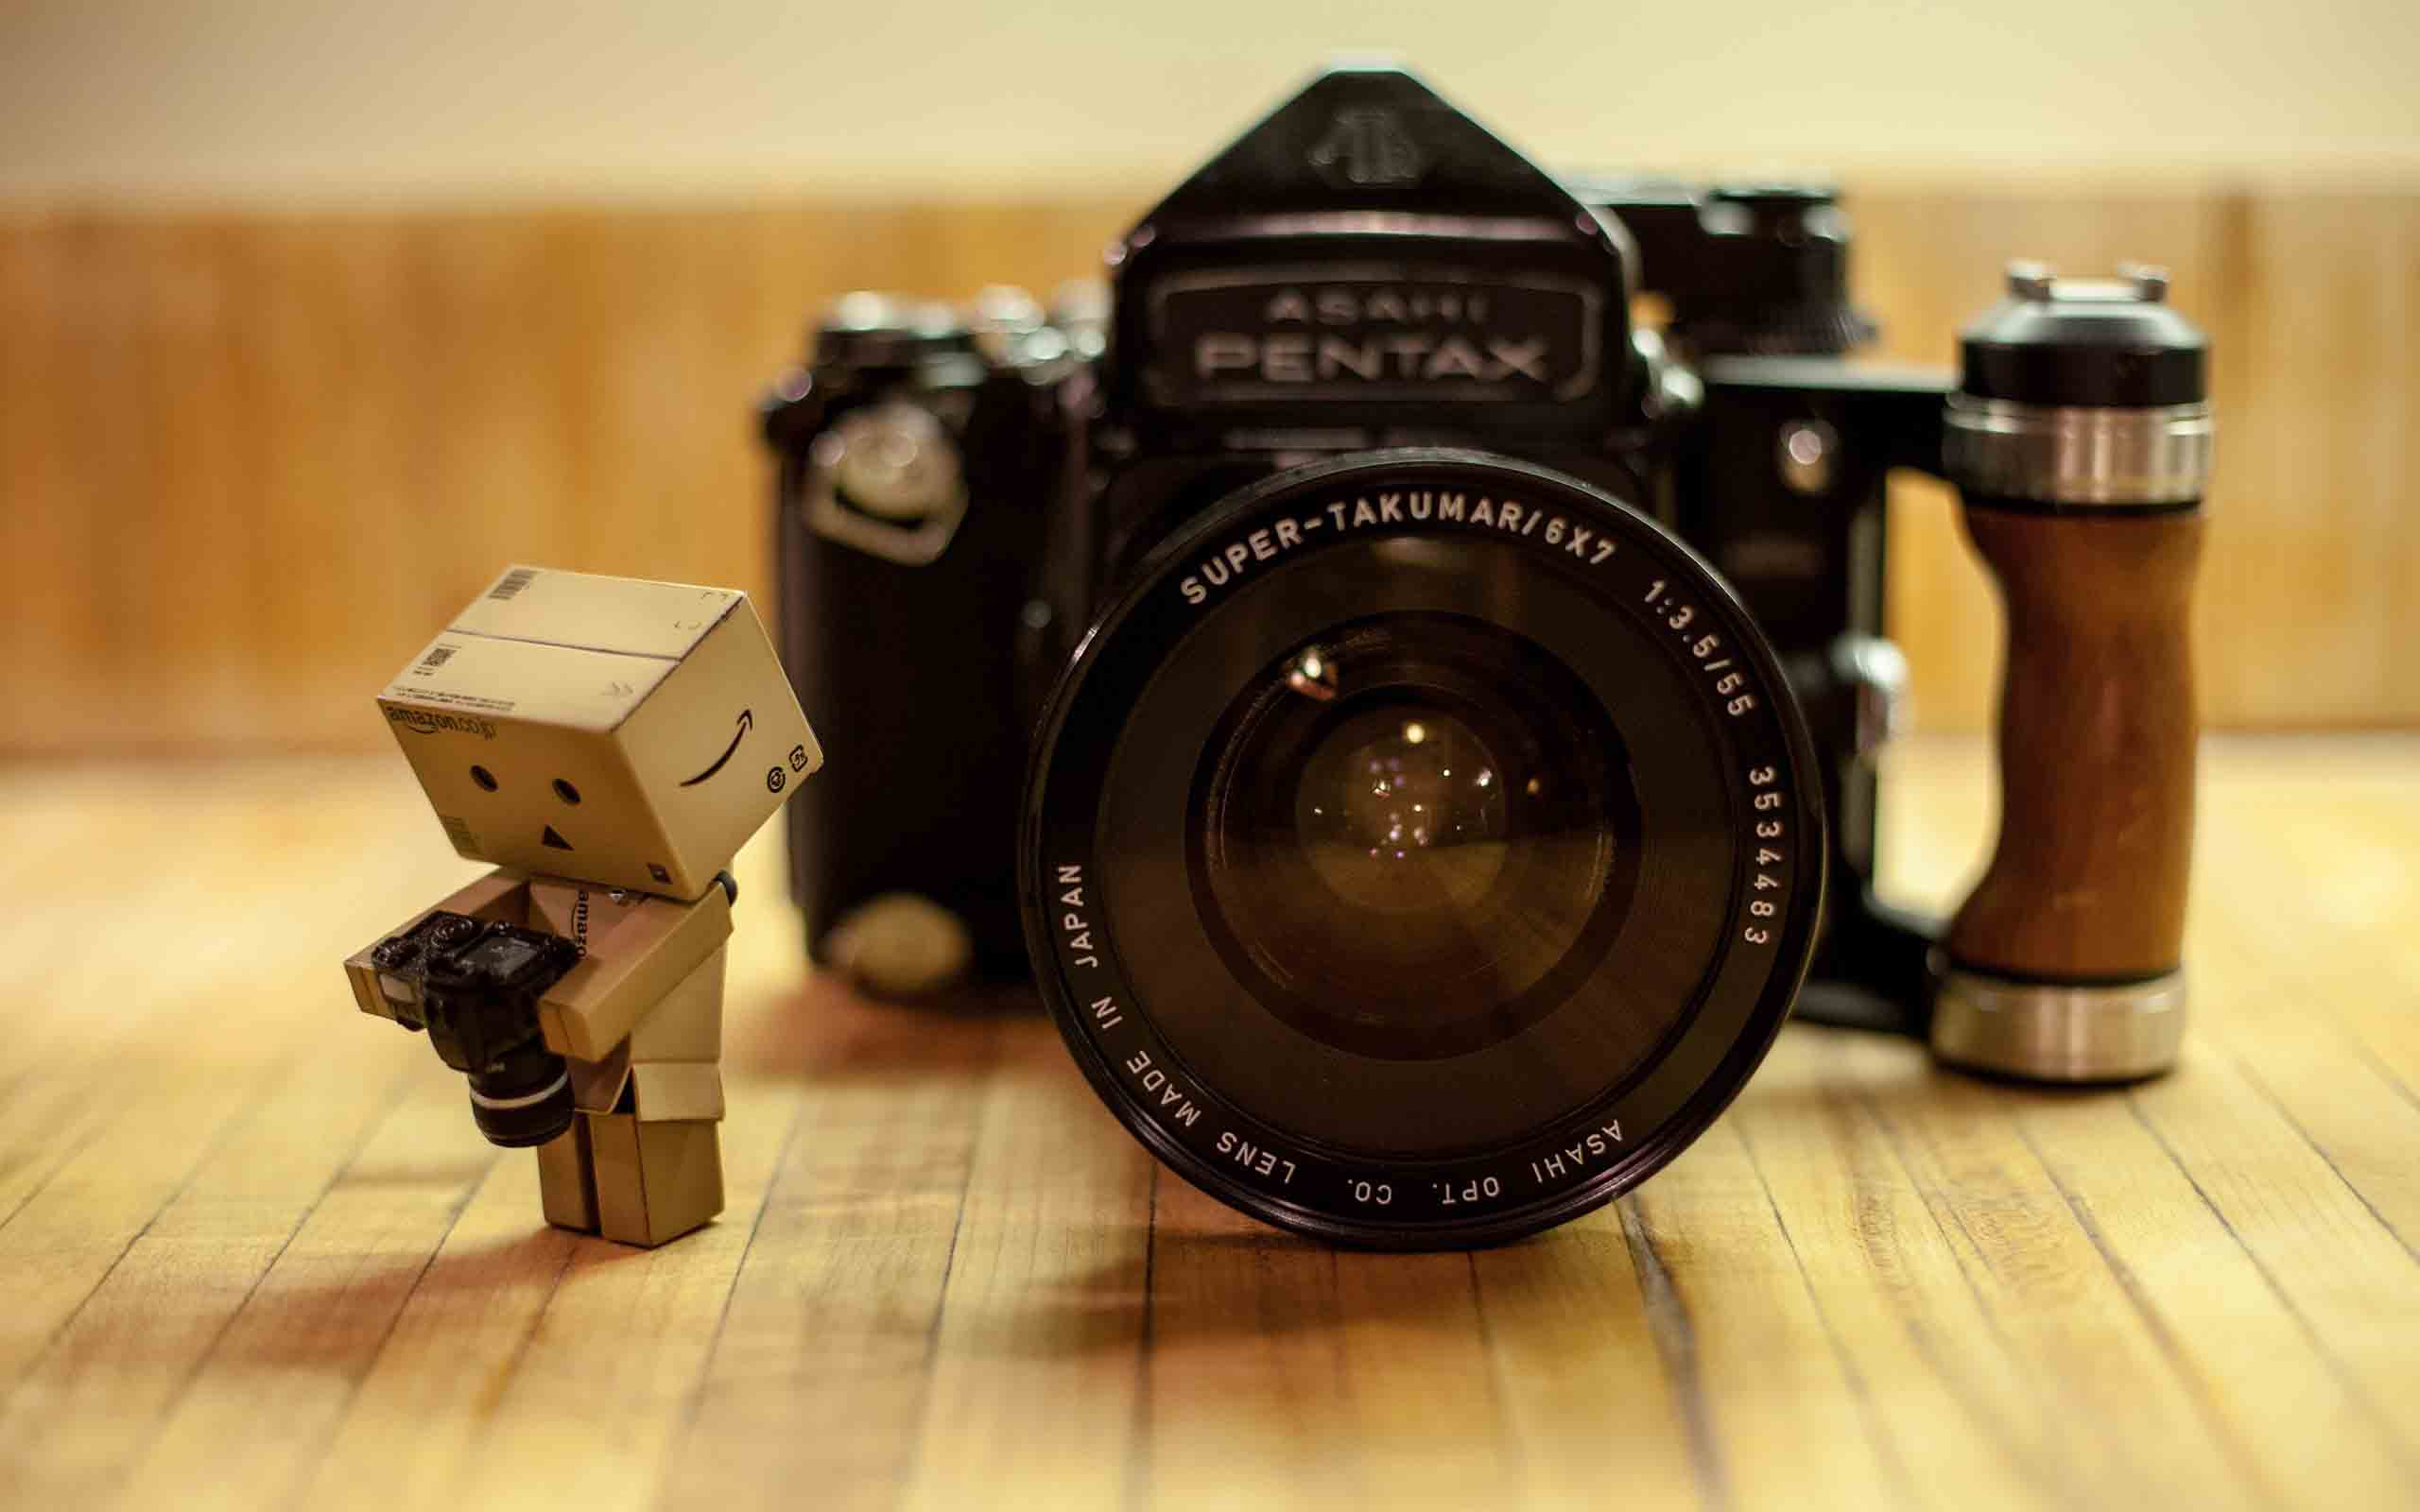 Canon Camera Hd Wallpapers Download HD Wallpapers Download 2560x1600